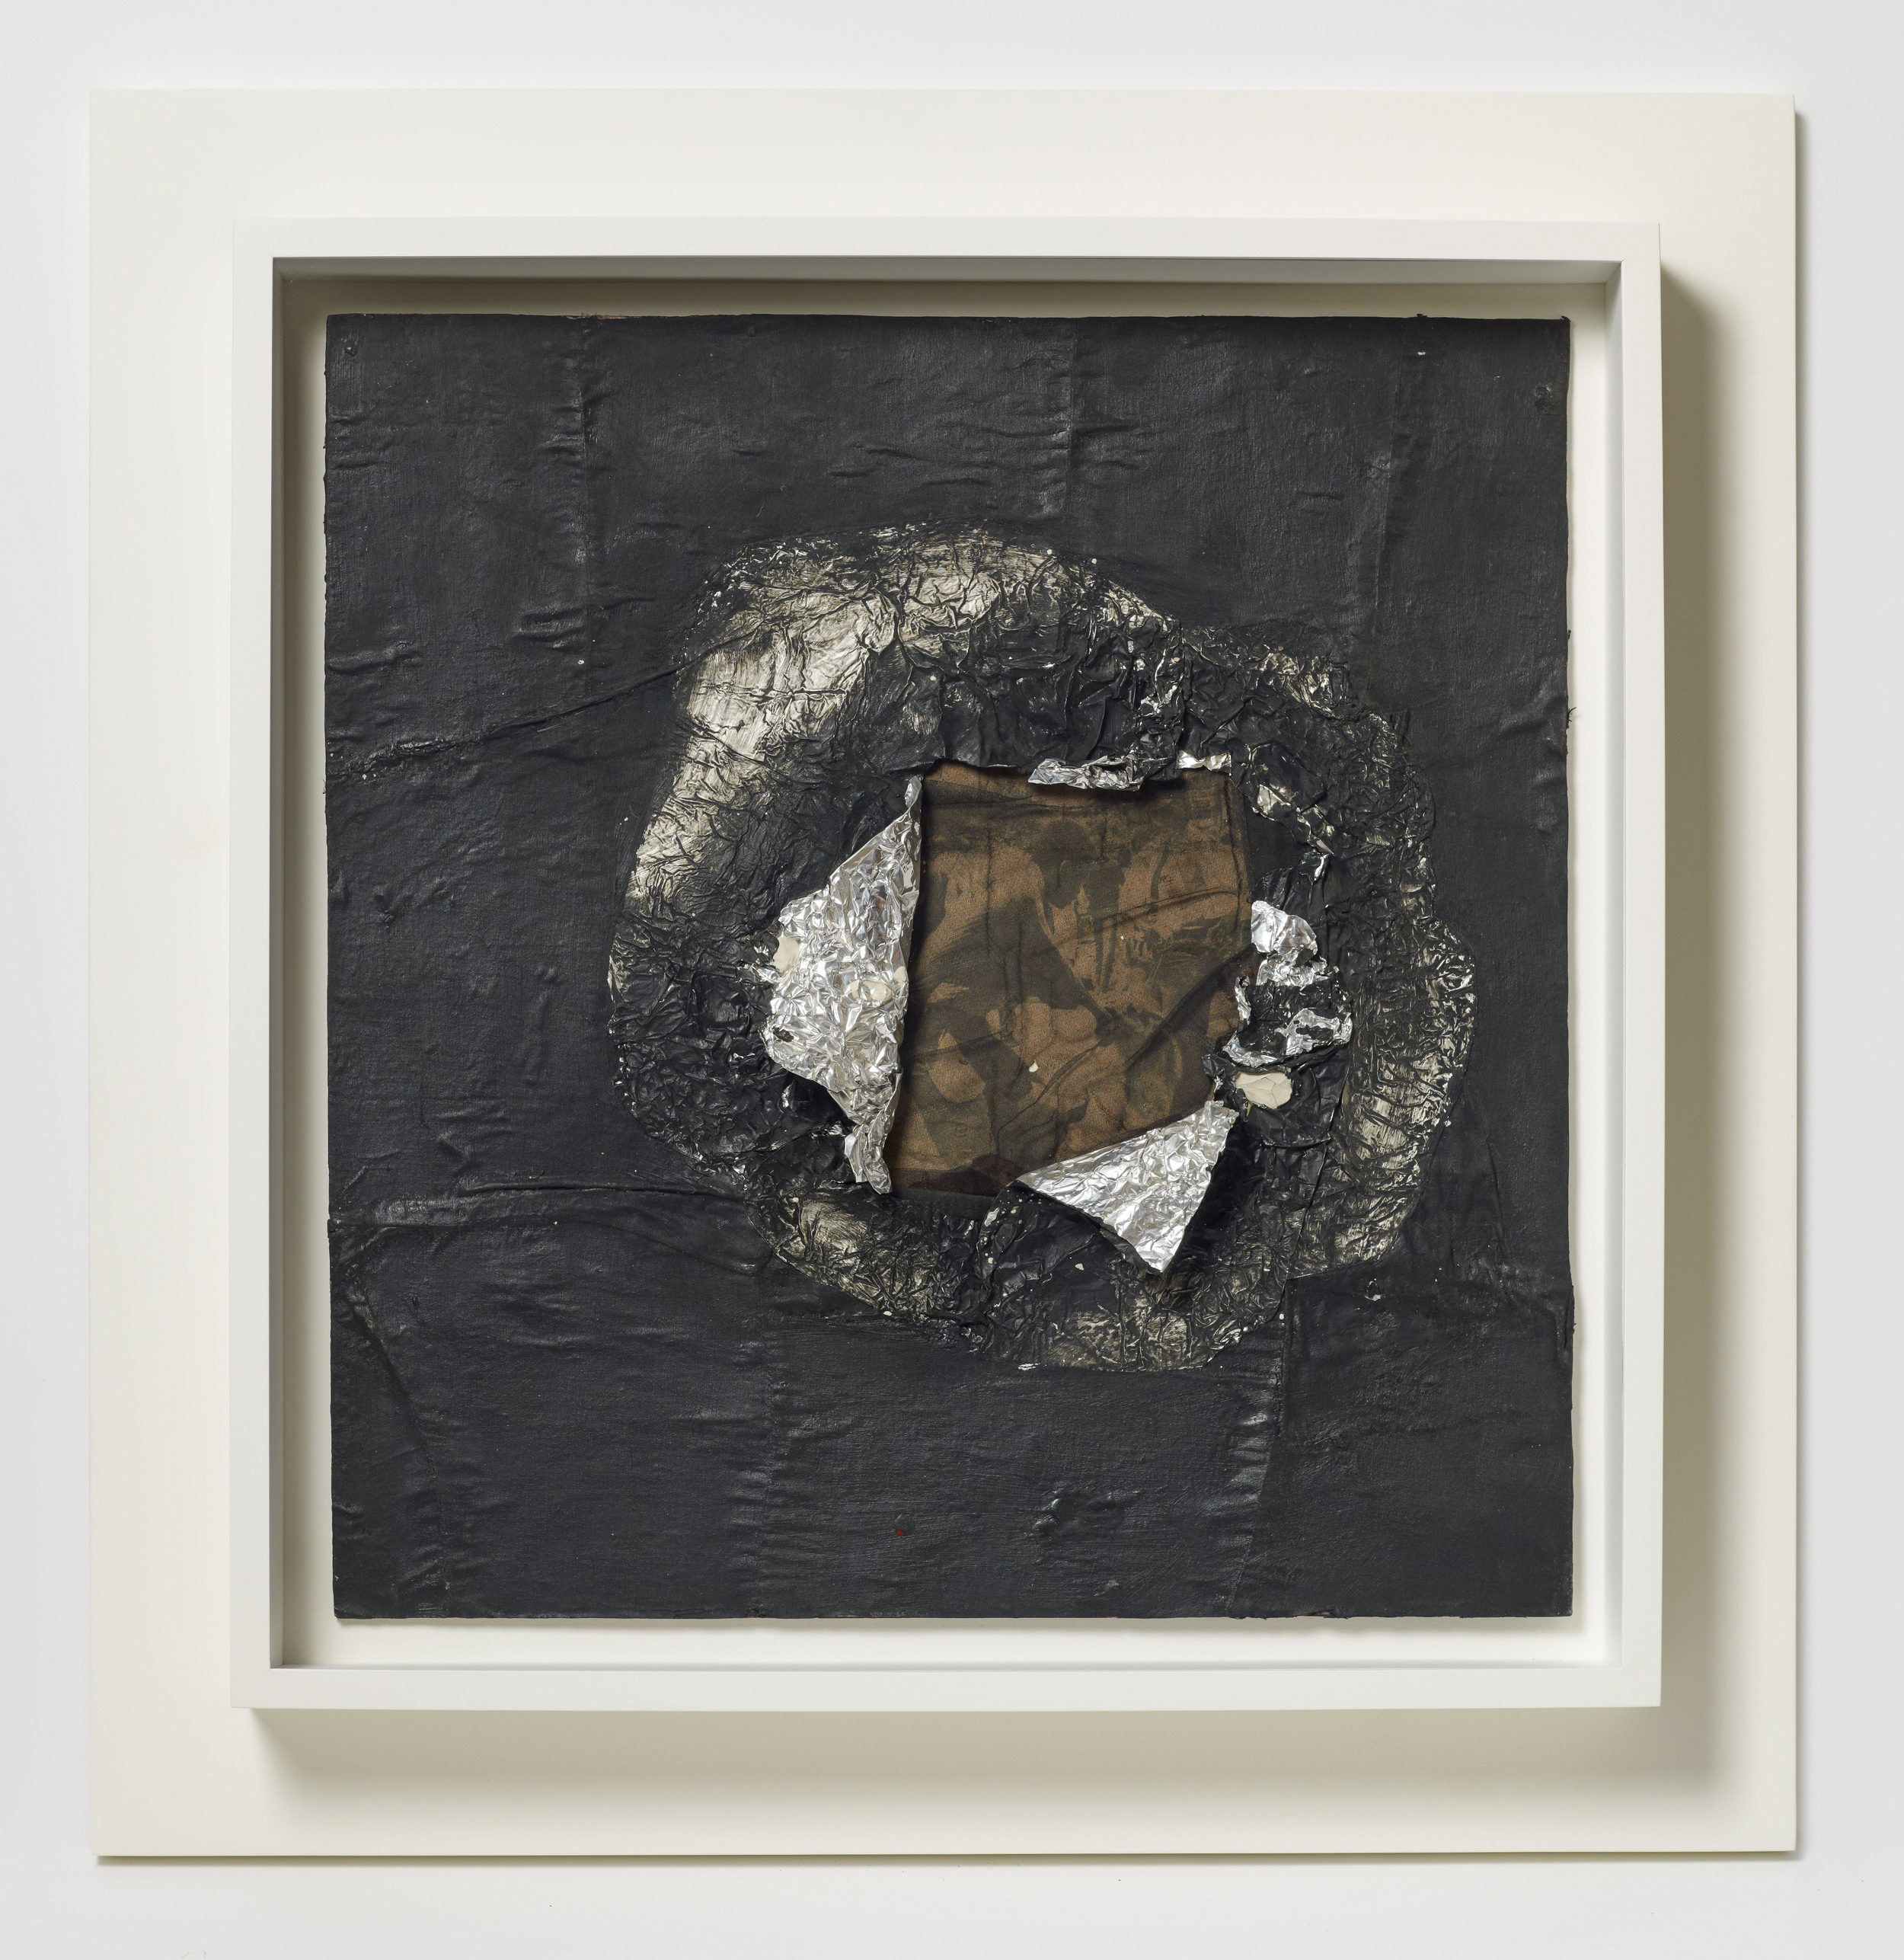 Jack Whitten (American, born 1939). Birmingham 1964. Aluminum foil, newsprint, stocking, and oil on plywood, 16 5/8 x 16 in. (42.2 x 40.6 cm). Collection of the artist, courtesy of the artist and Alexander Gray Associates, New York. © Jack Whitten    Witness: Art and Civil Rights in the Sixties is organized by the Brooklyn Museum